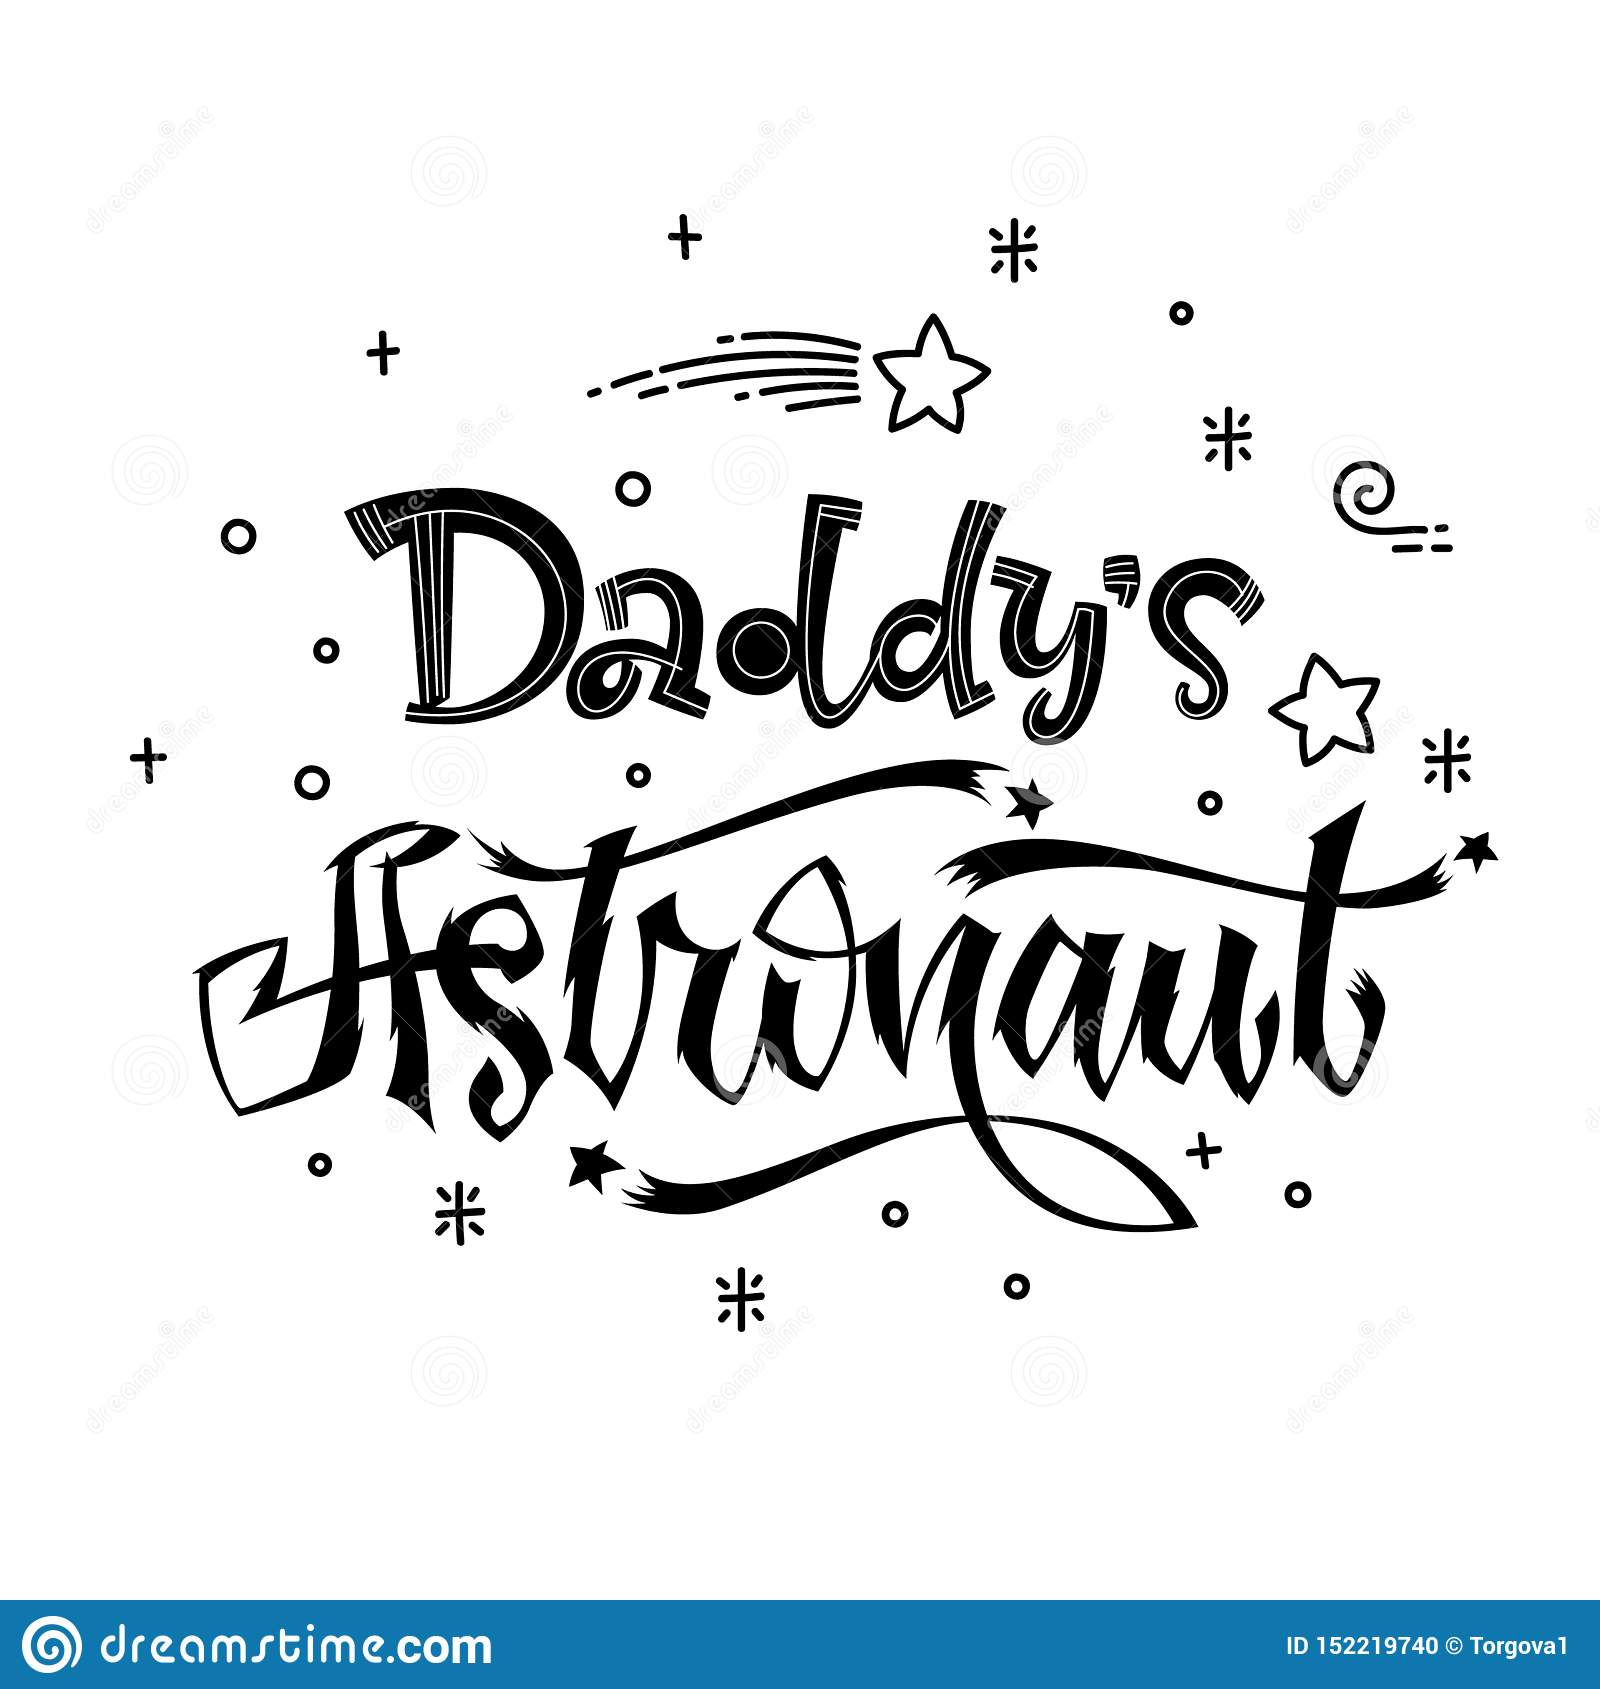 Daddy`s Astronaut quote. Baby shower hand drawn lettering logo phrase